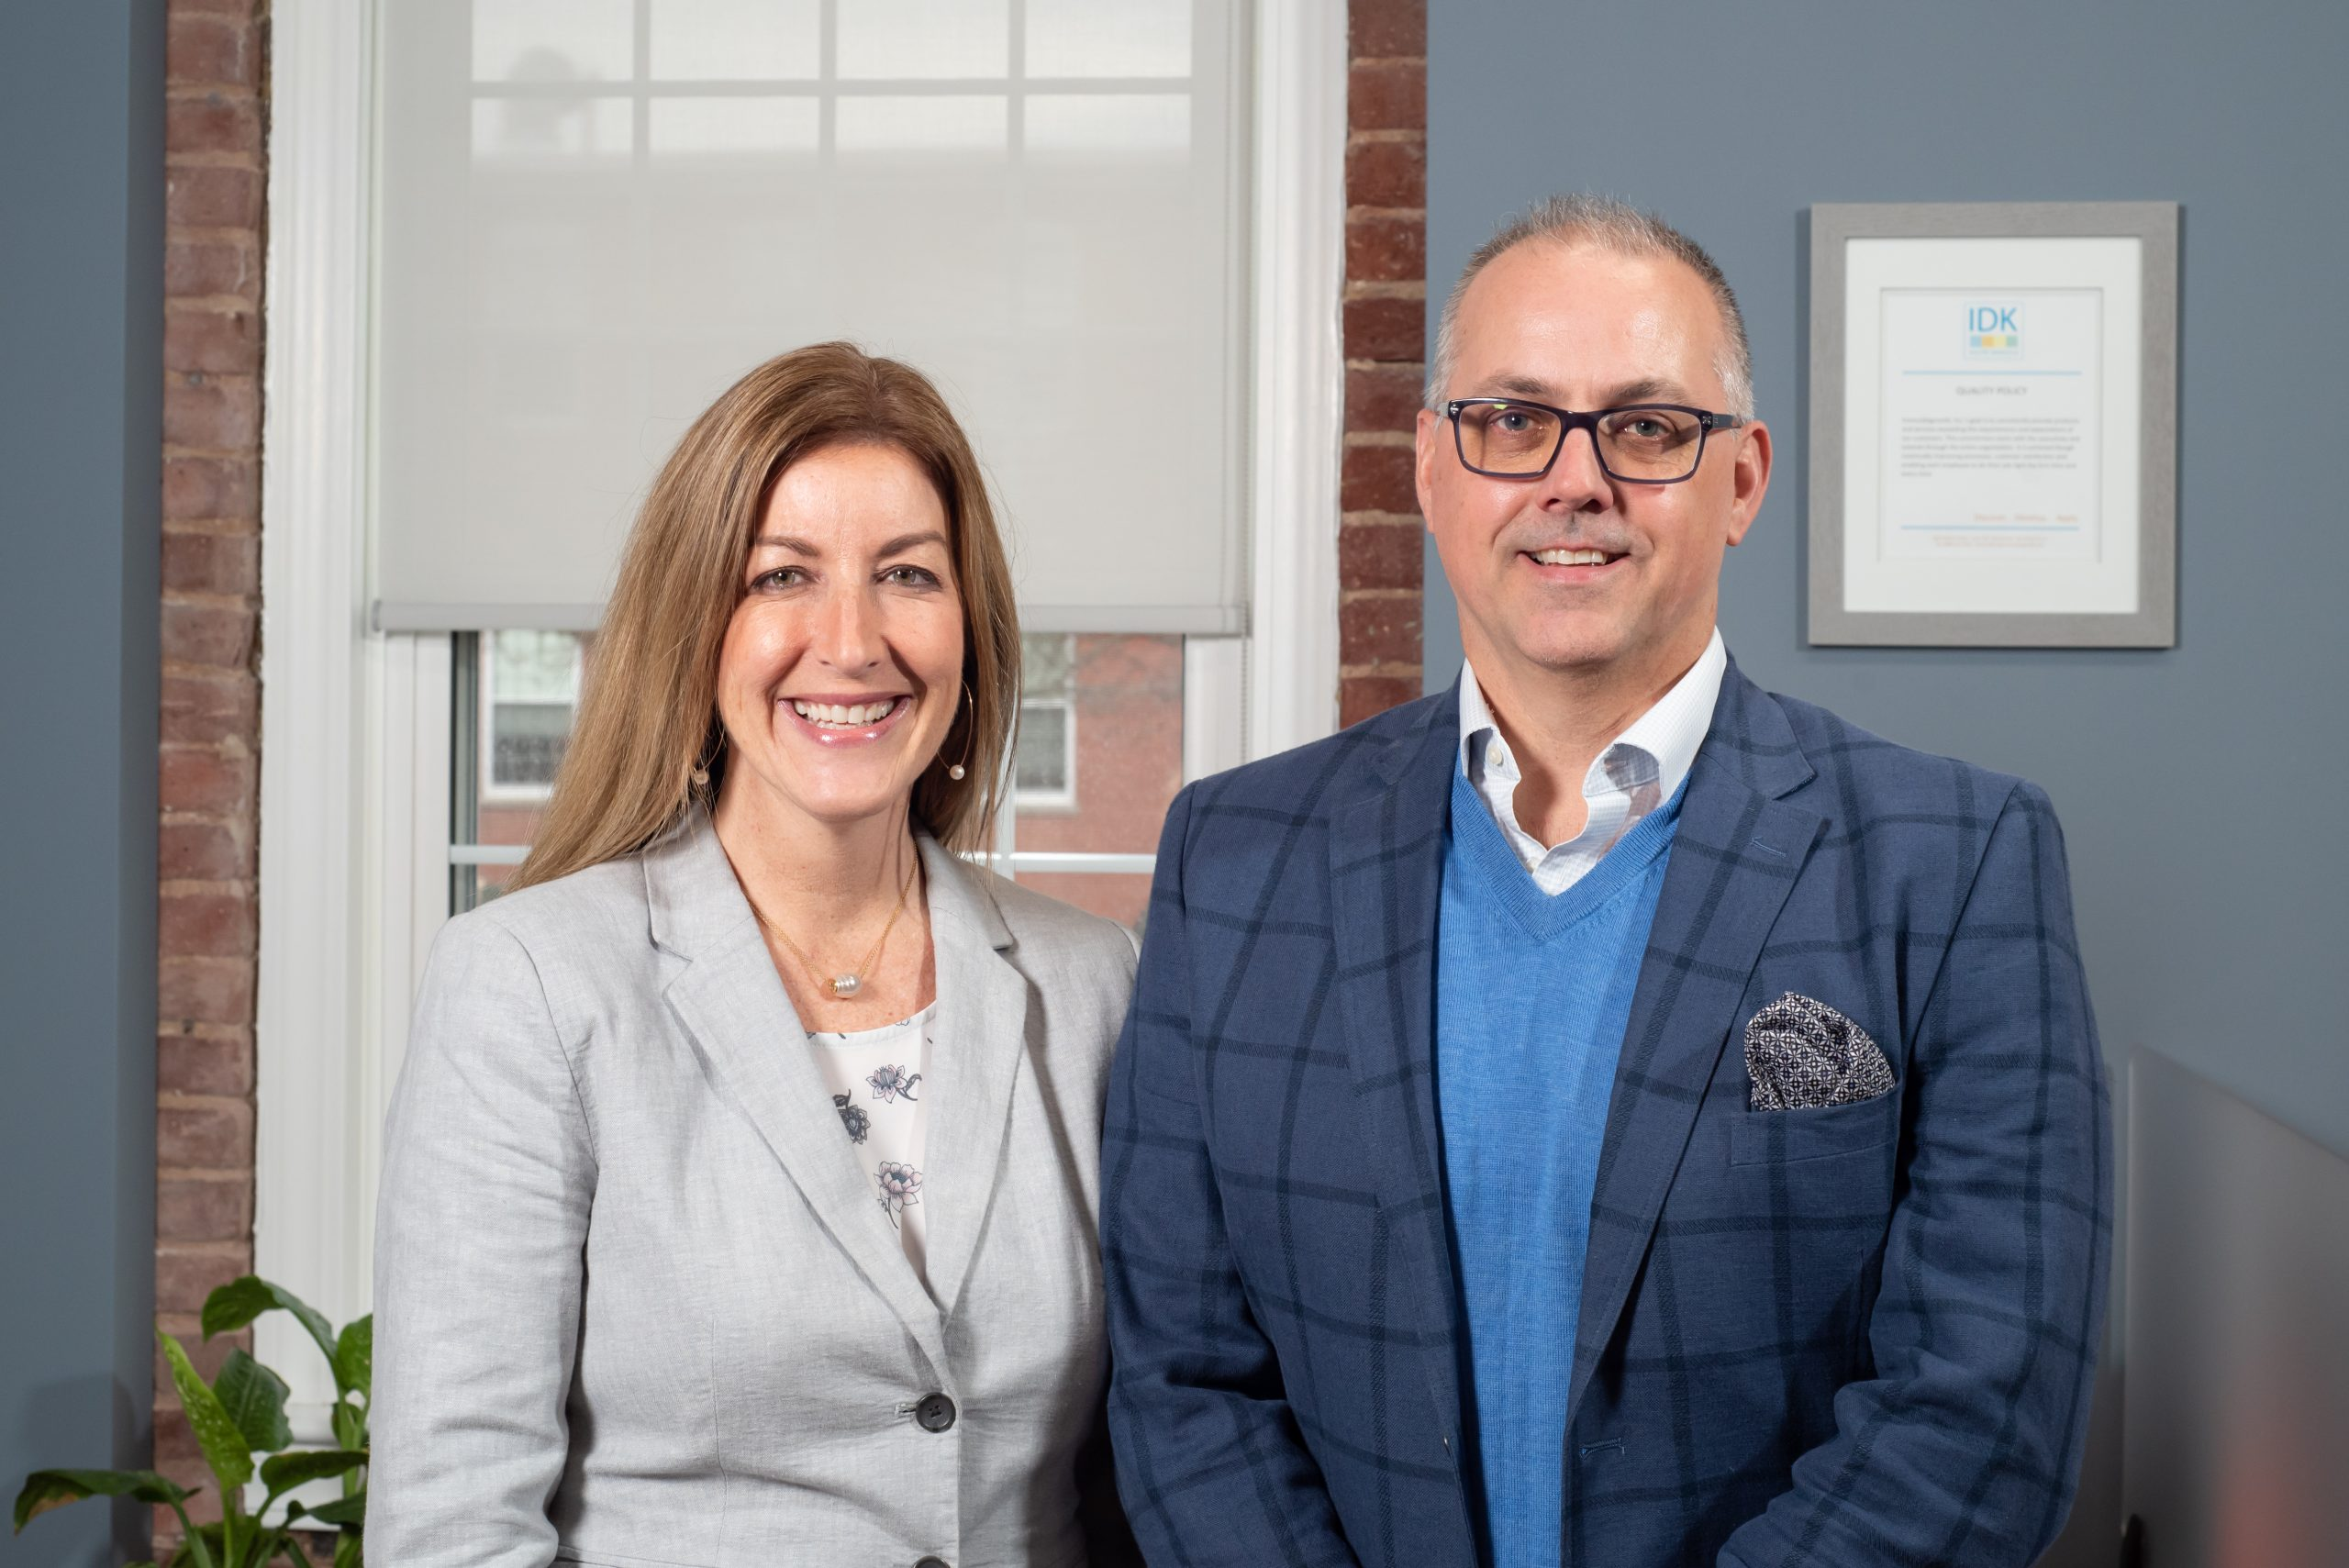 Jen Mayes and Terry Fisher, owners of IDK, Inc.